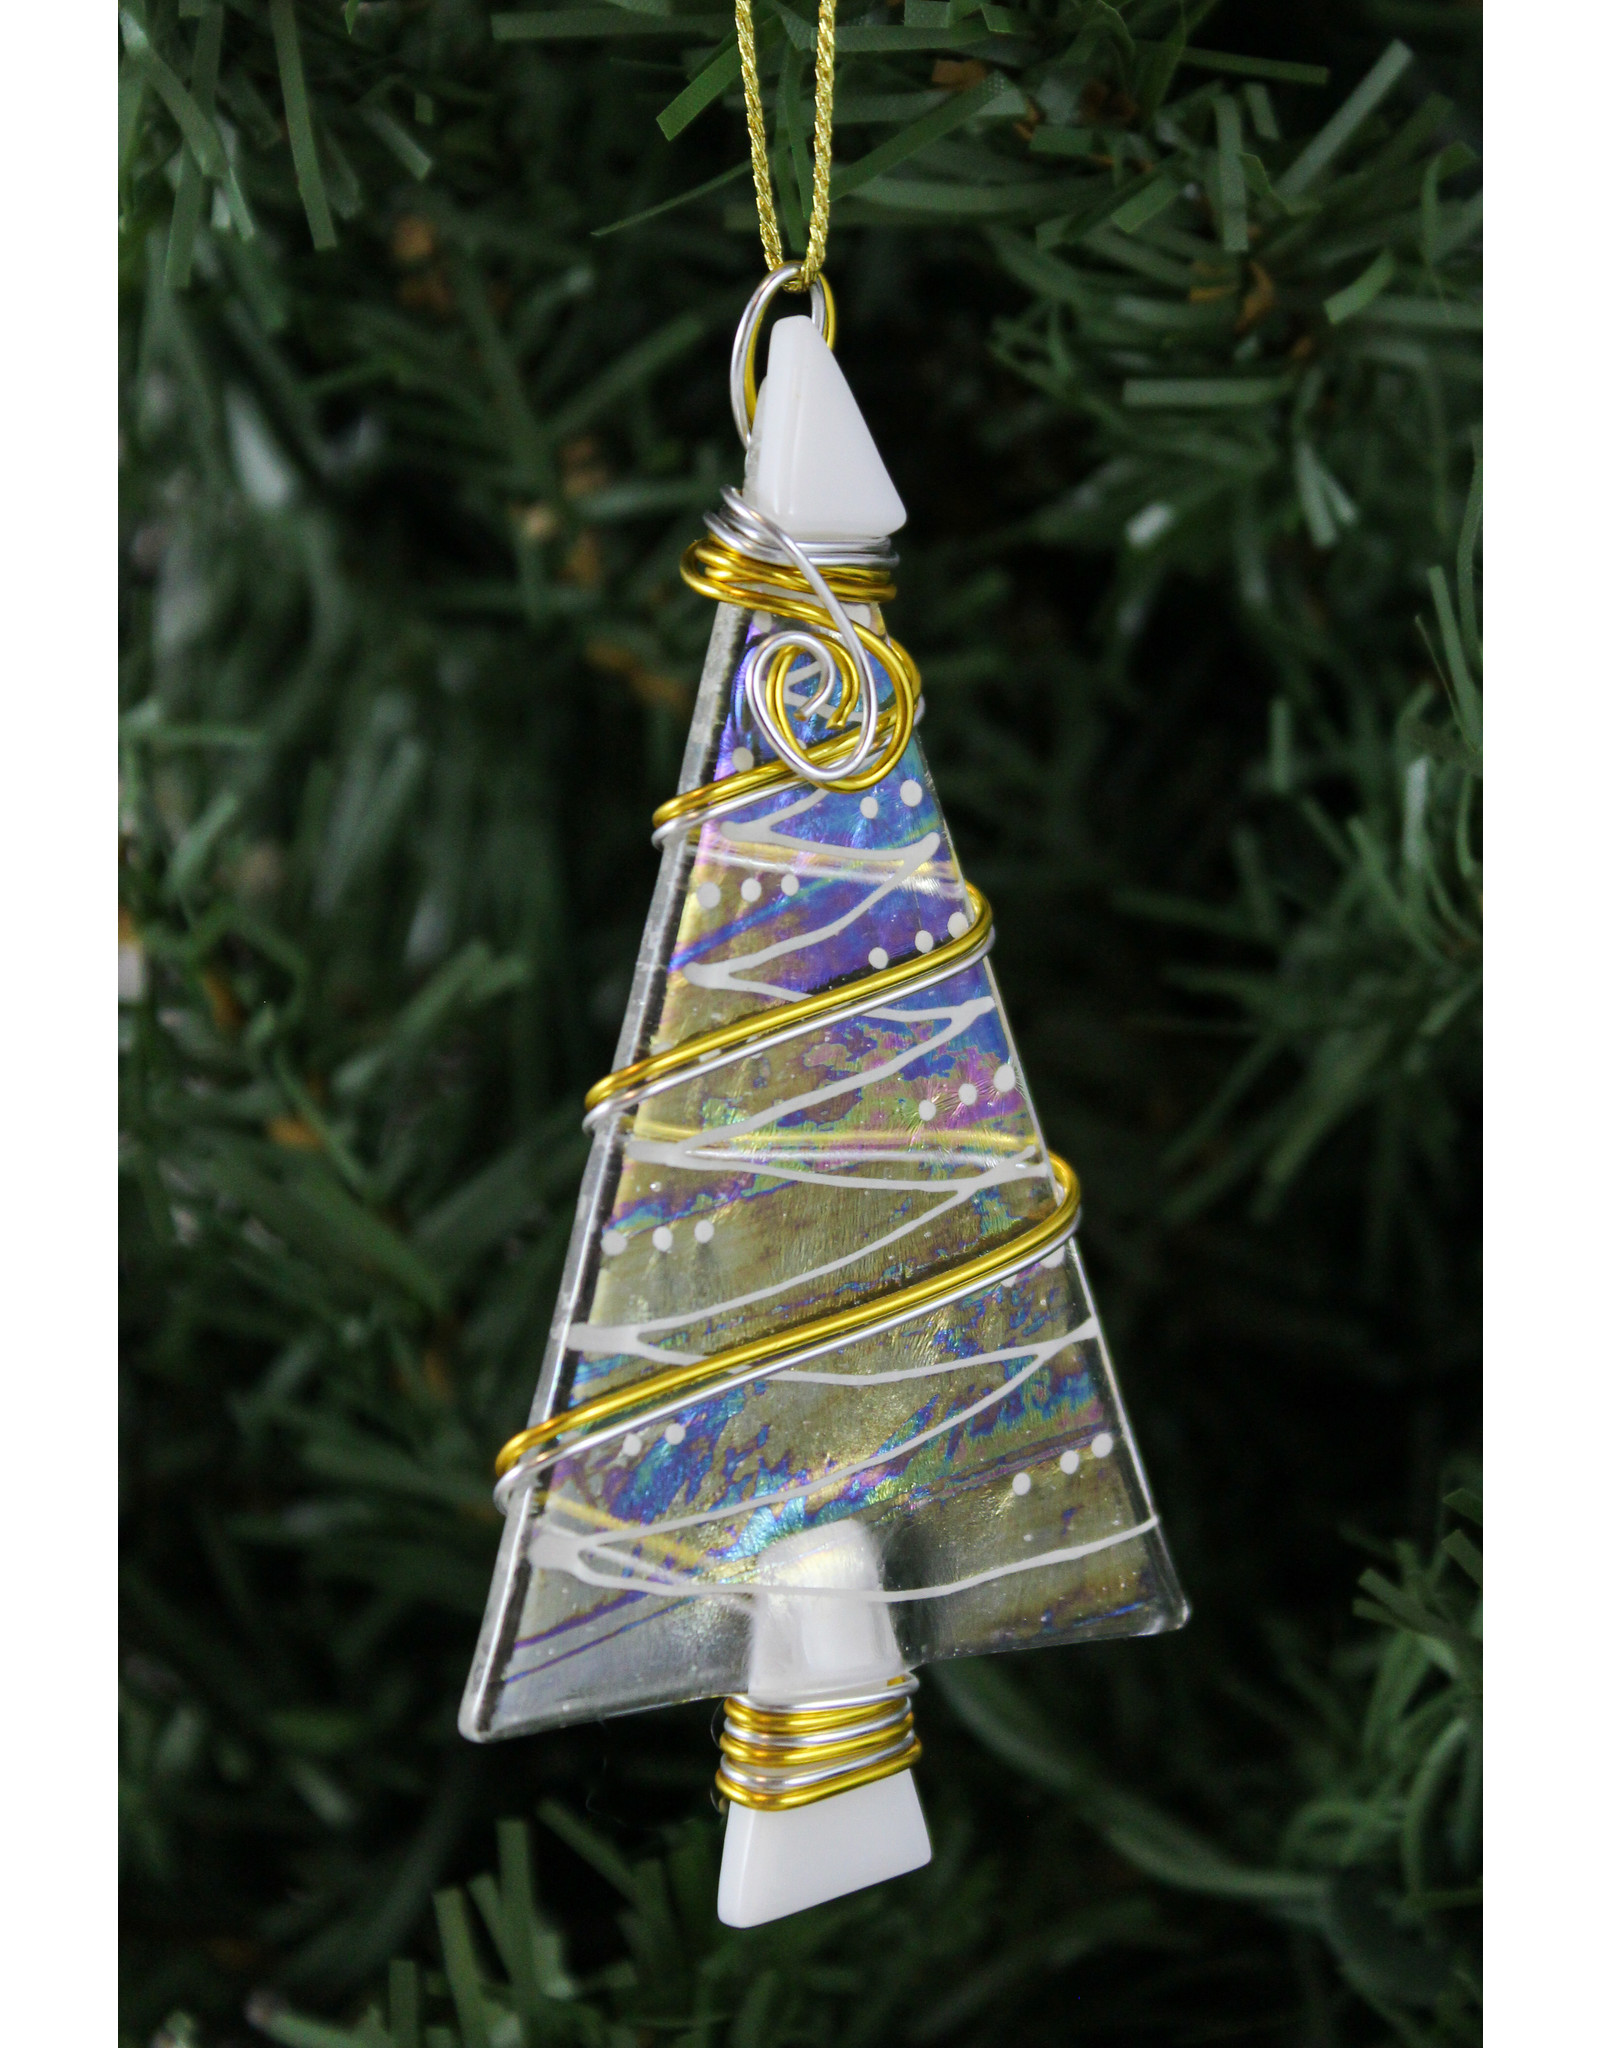 Brent Harding Fused Glass Ornaments by Brent Harding